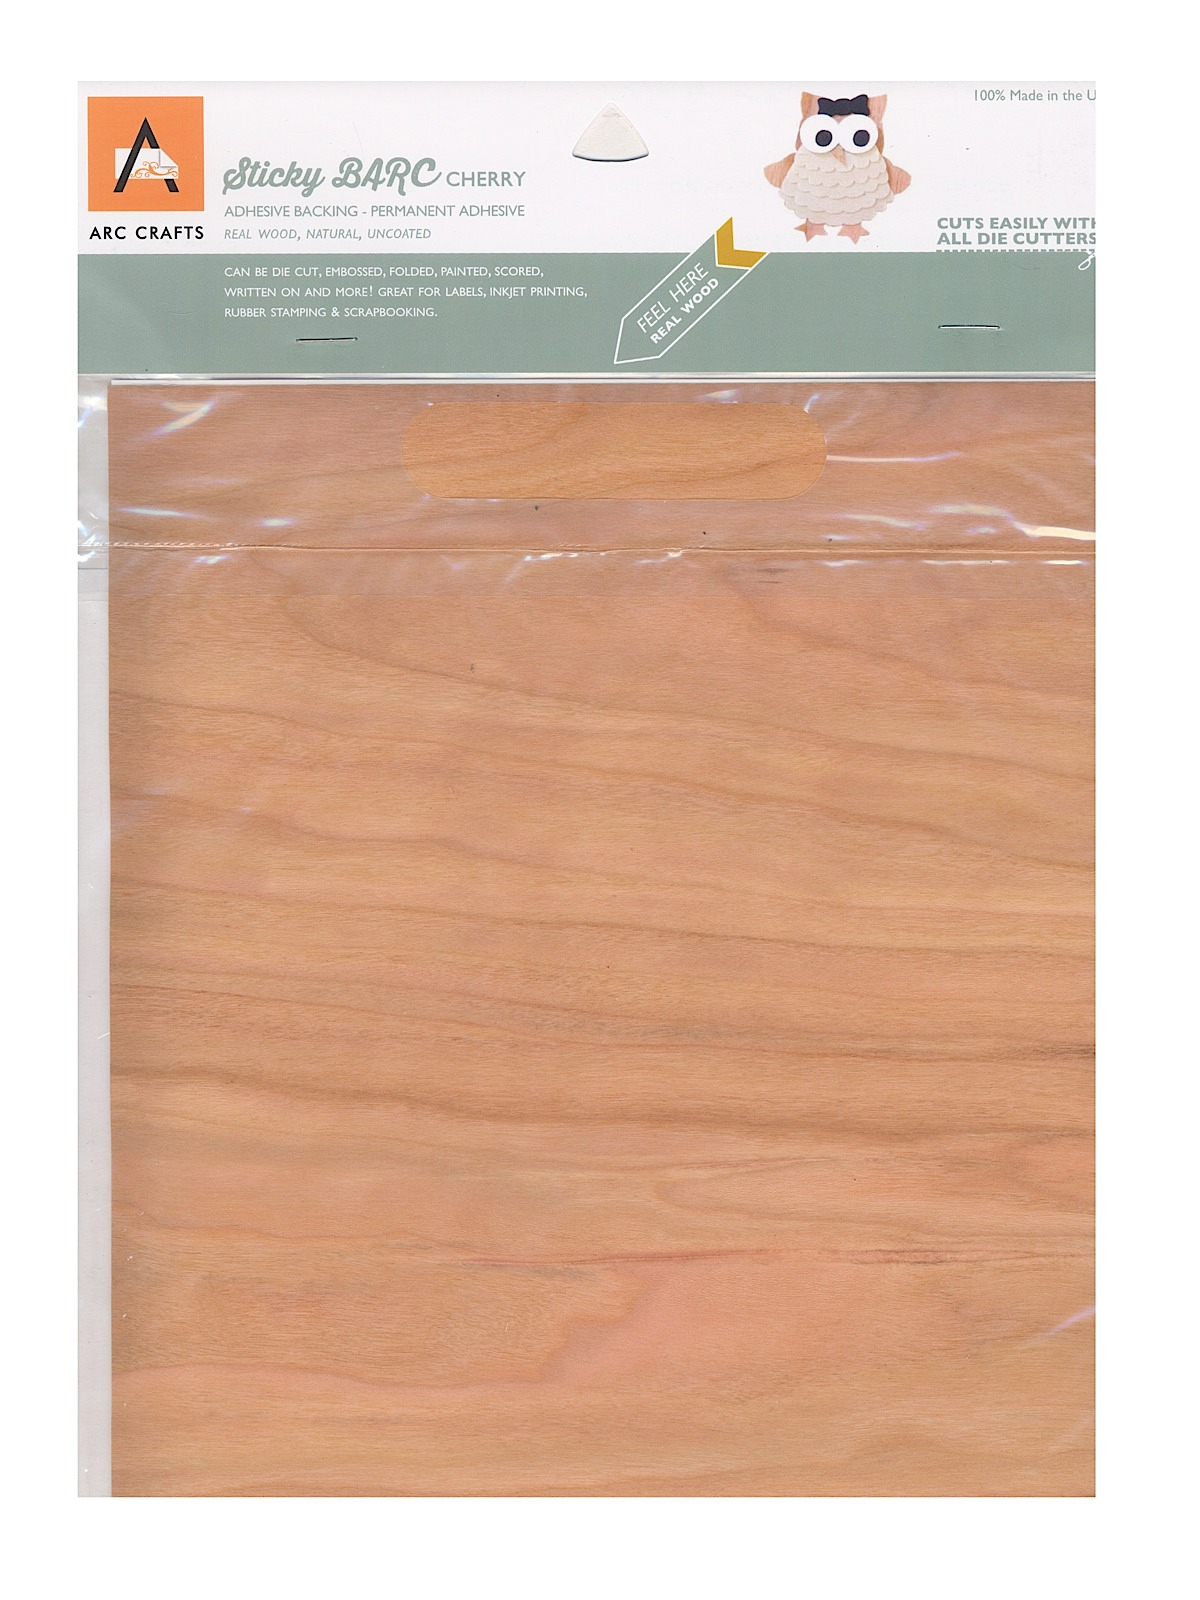 Real Wood Paper Sheets Cherry 8 1 2 In. X 11 In. Adhesive Backing